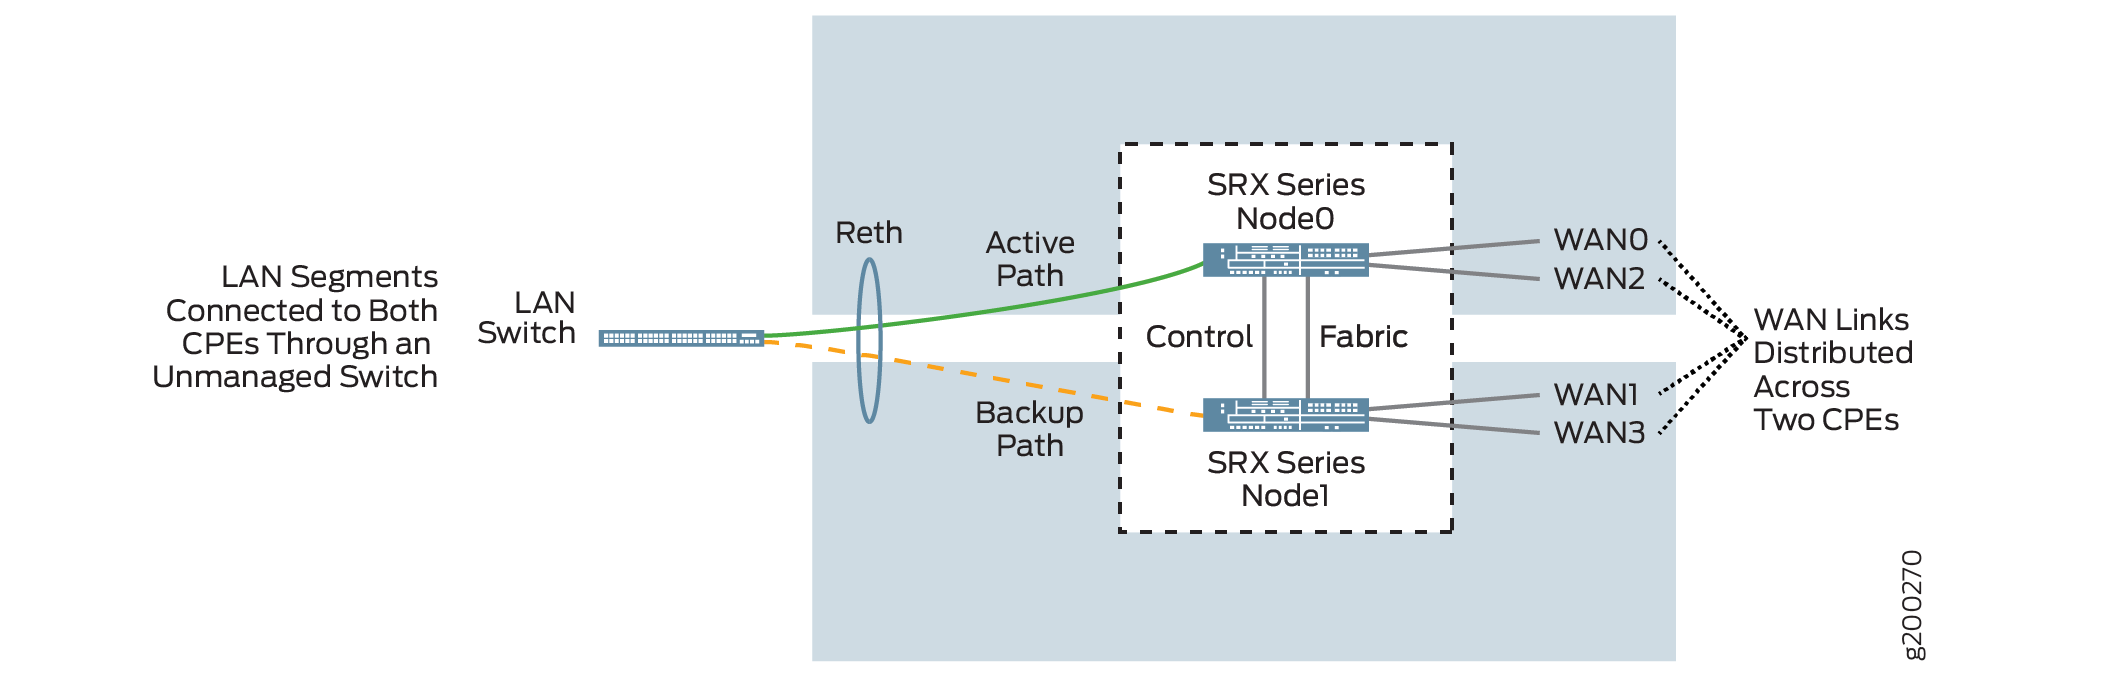 Dual CPE Device Topology - SRX Series Devices